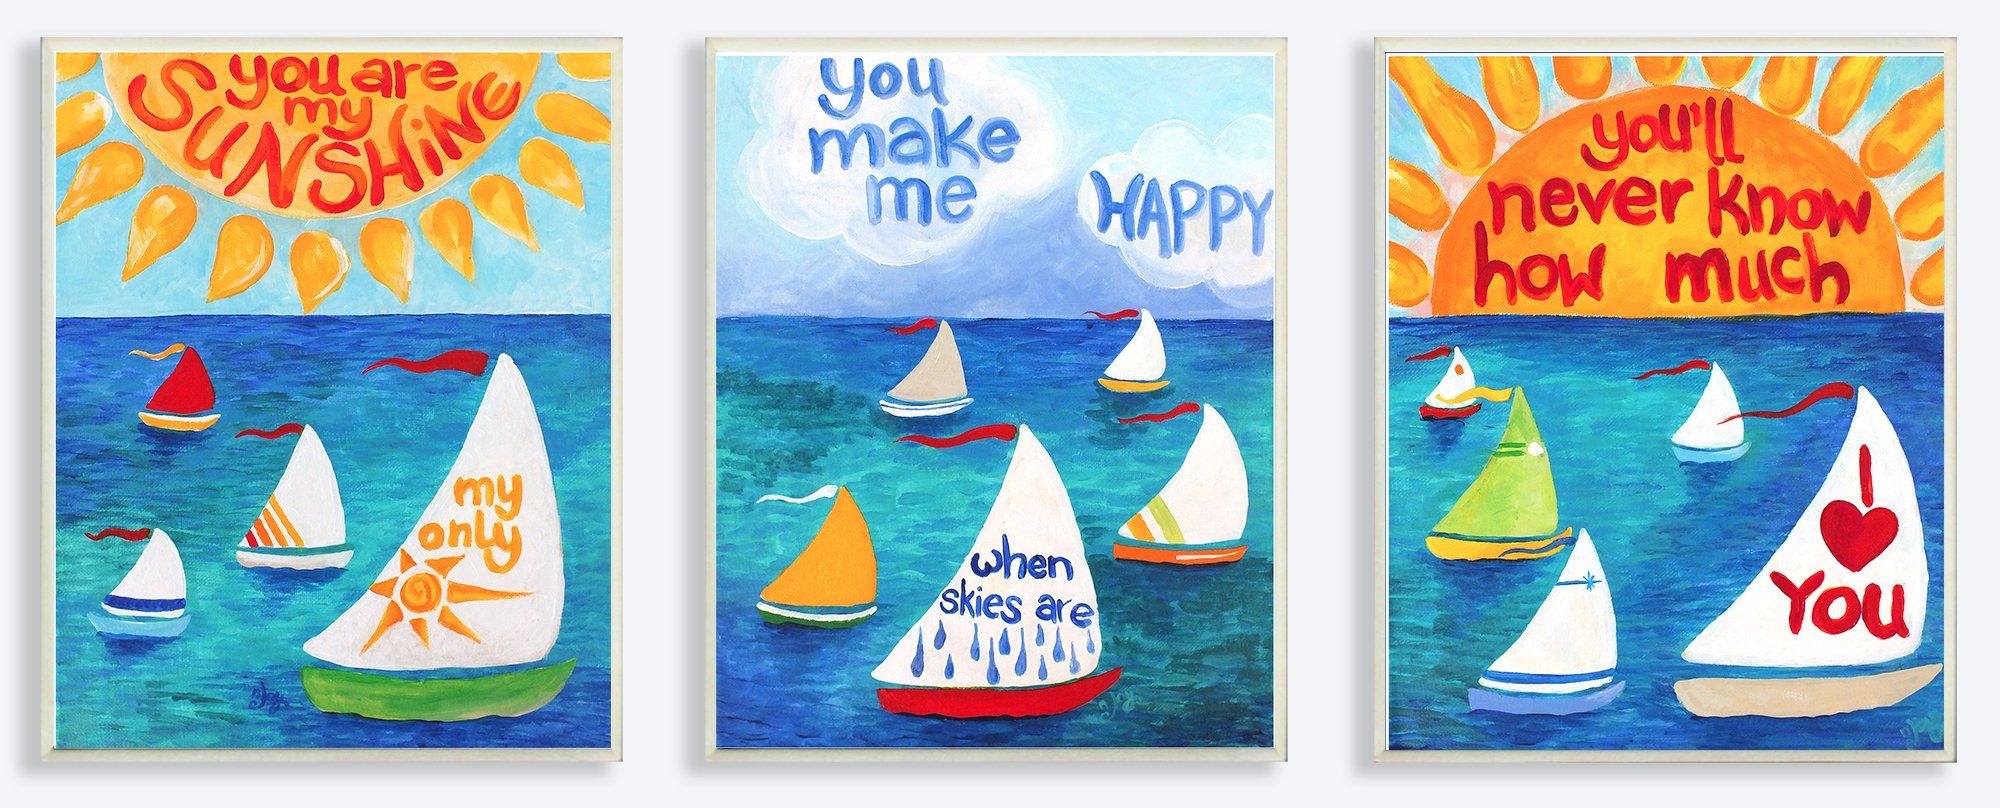 The Kids Room by Stupell You are My Sunshine Sailboats 3-Pc Rectangle Wall Plaque Set, 11 x 0.5 x 15, Proudly Made in USA by The Kids Room by Stupell